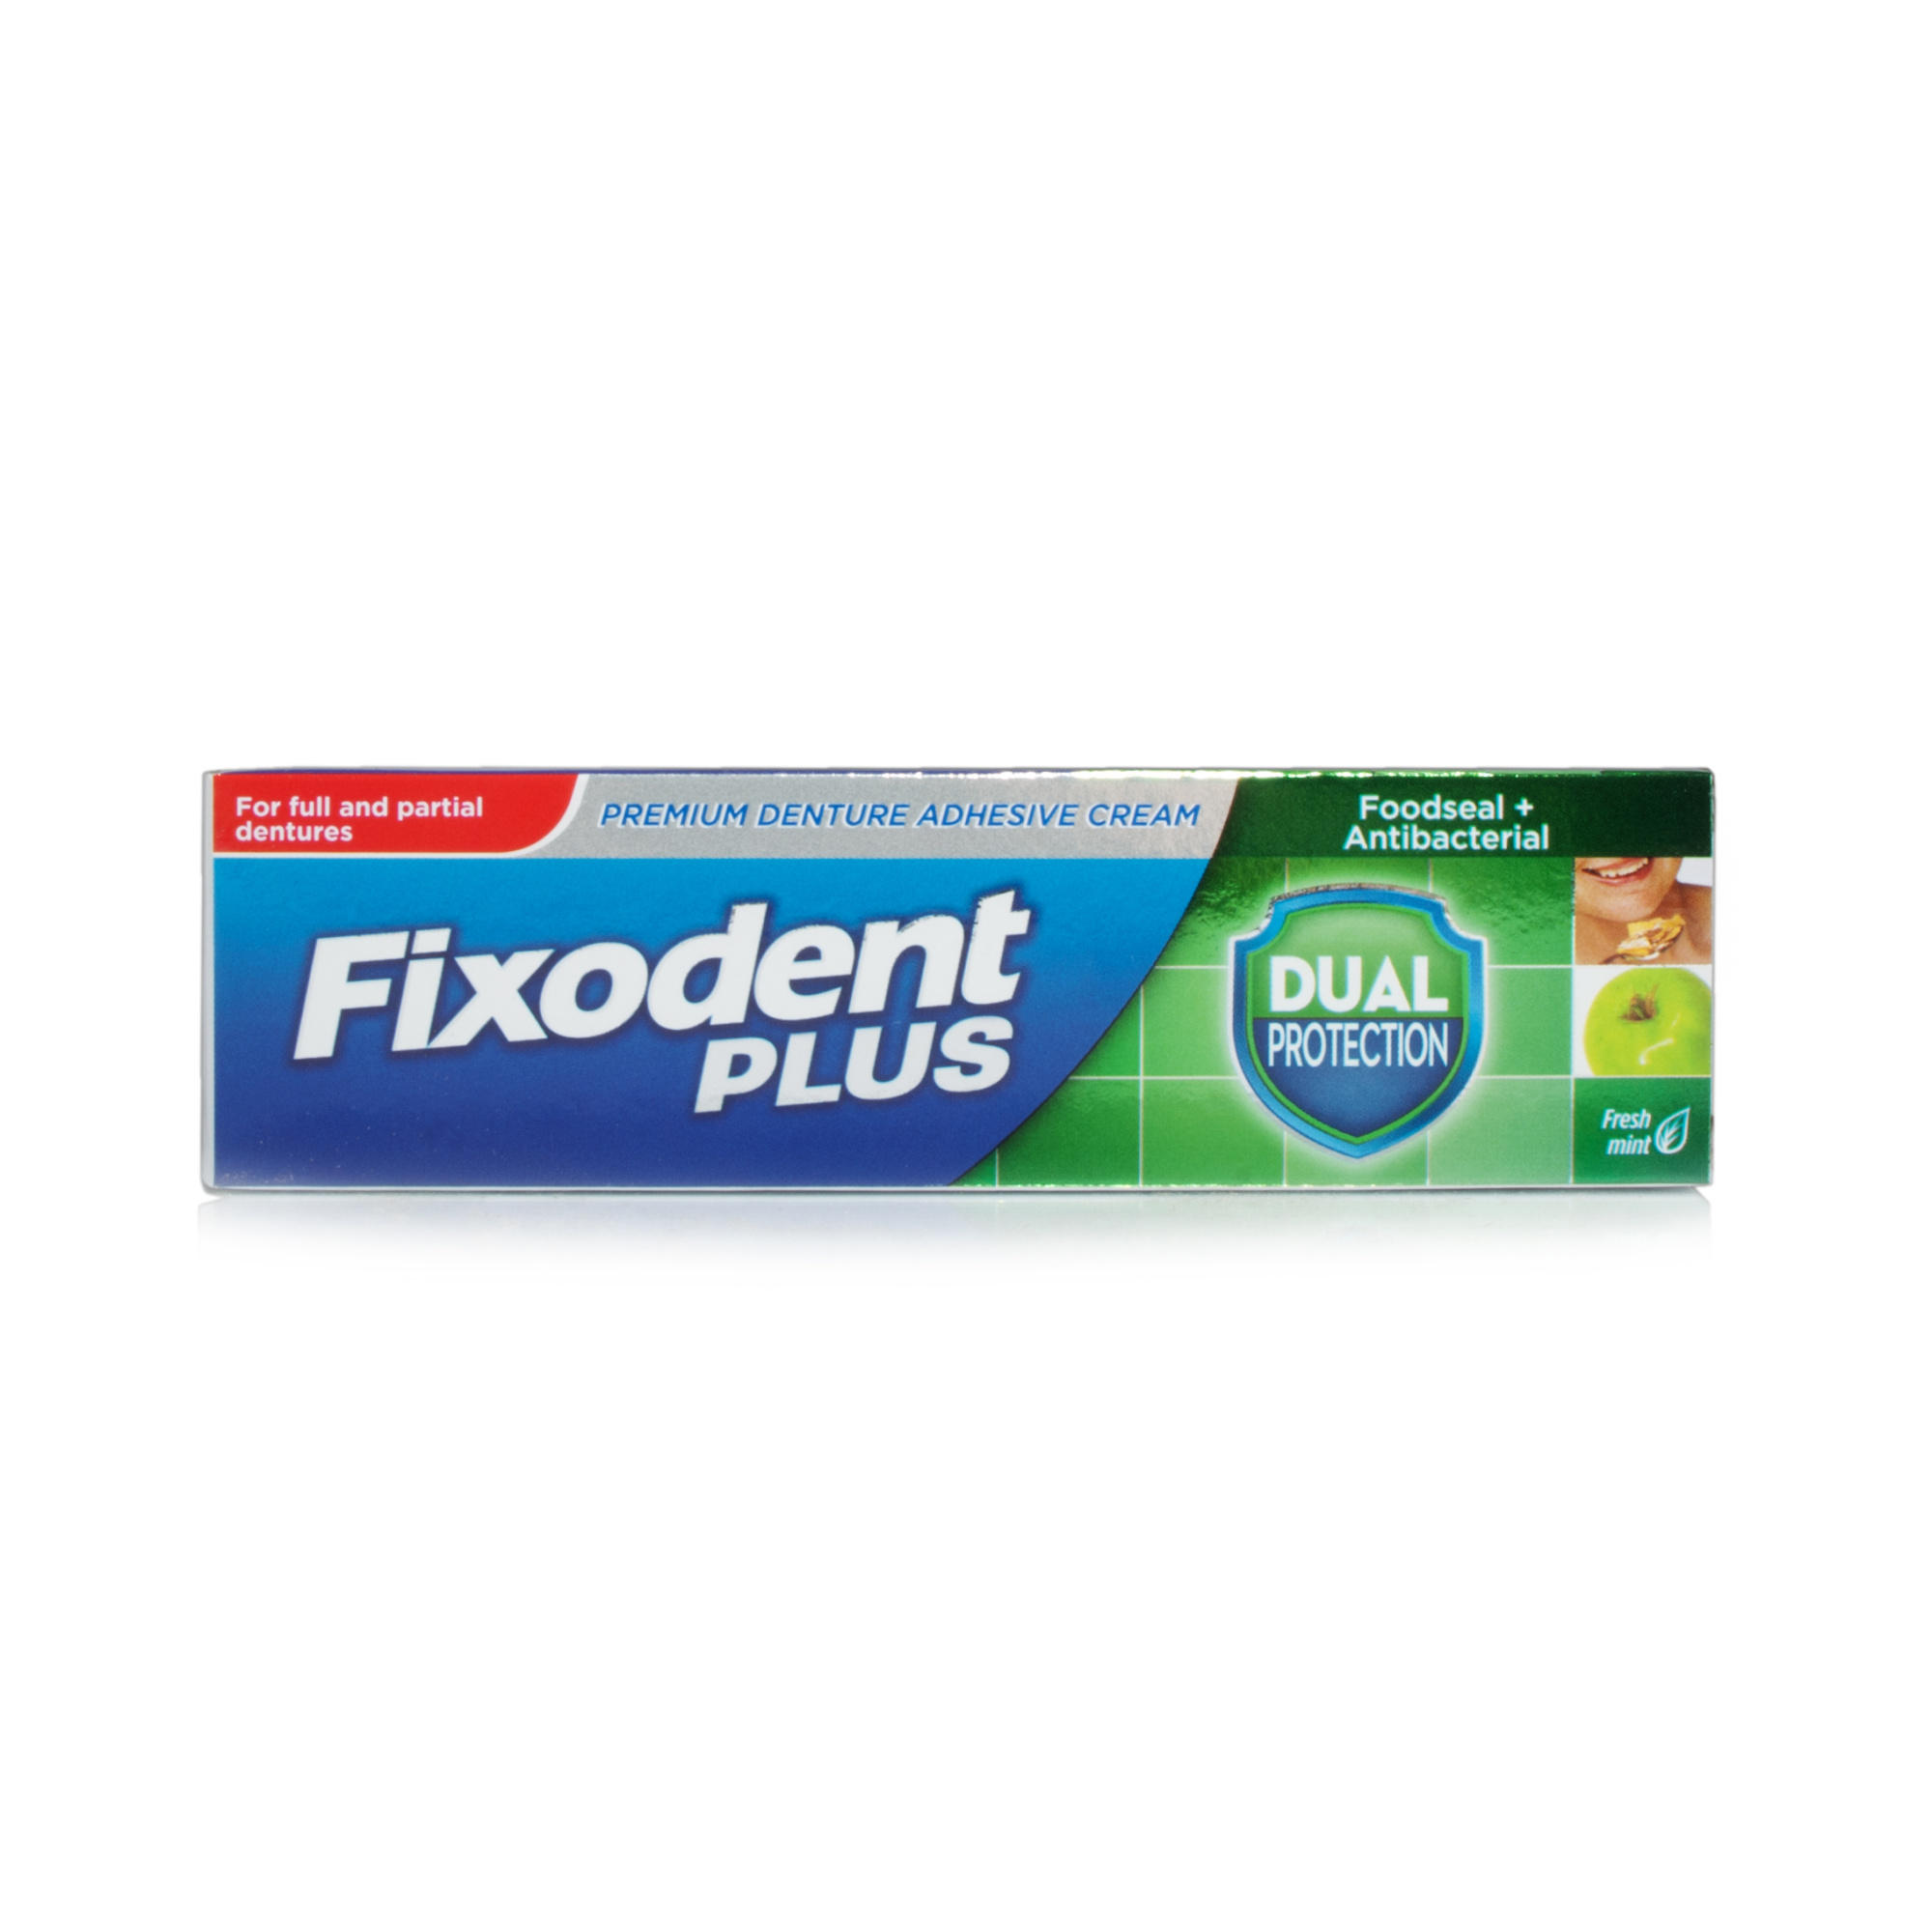 Fixodent Dual Protection Adhesive